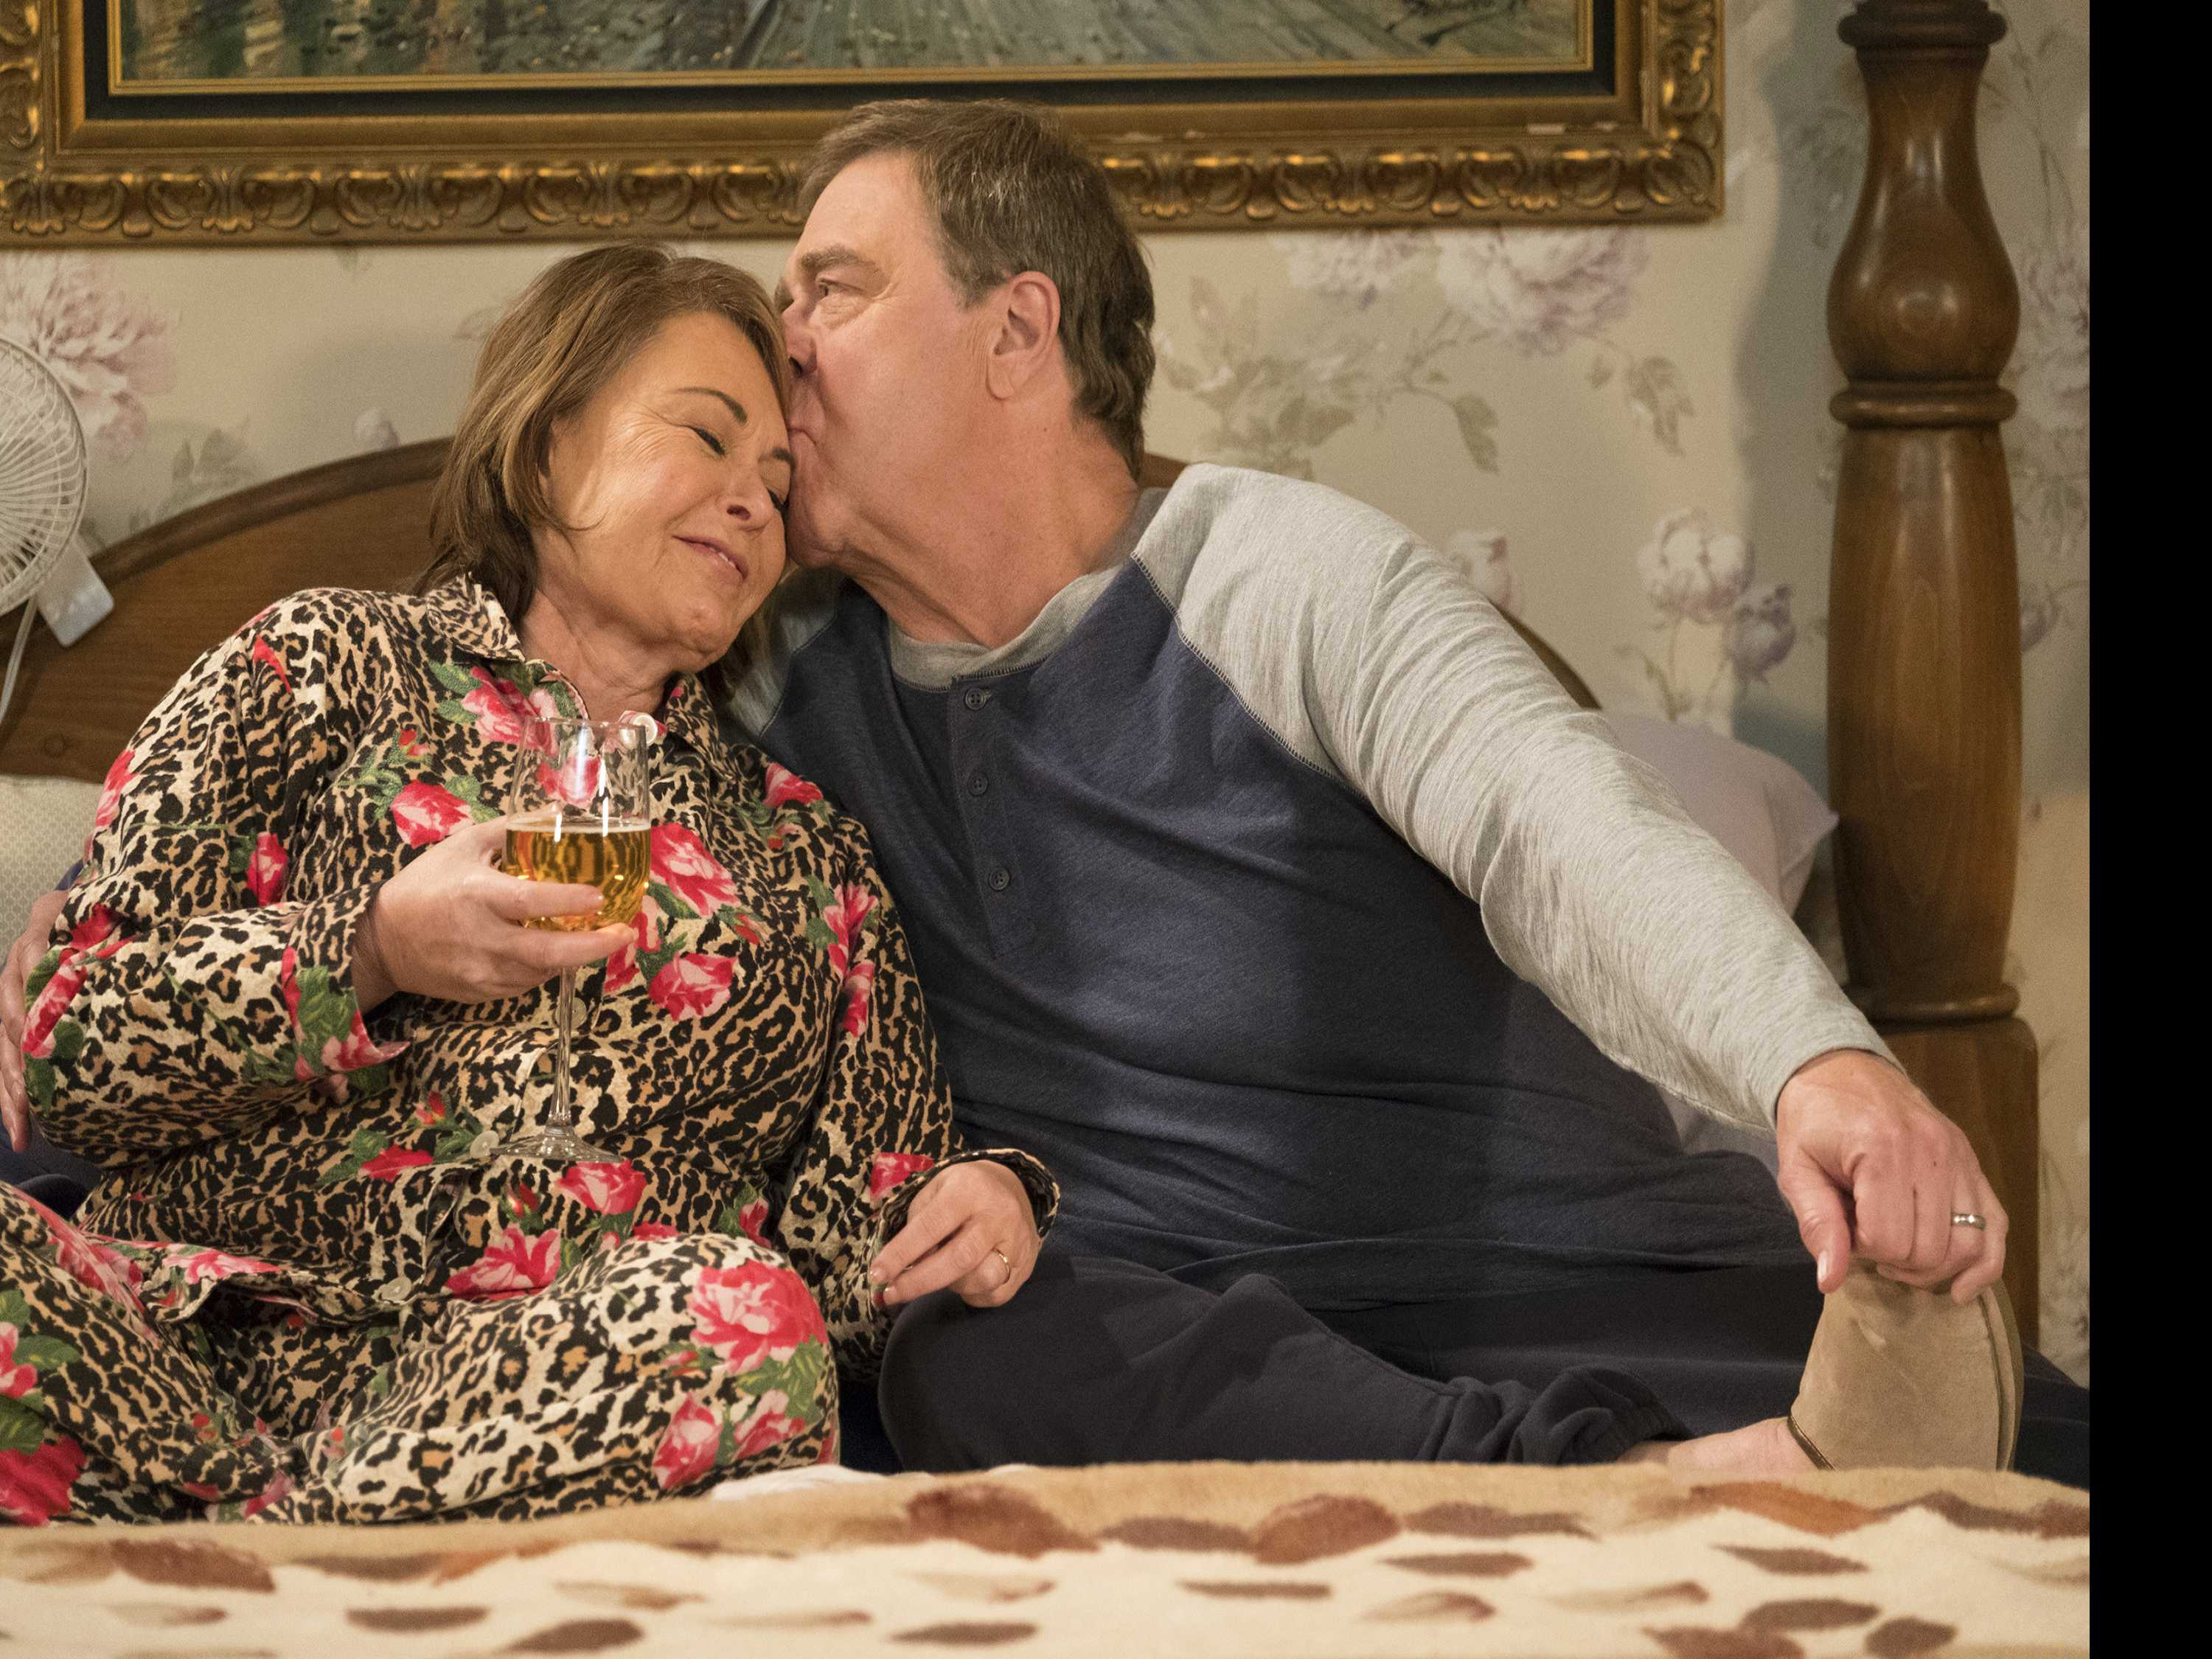 'Roseanne' Ends Season with a Hopeful Note as Storms Brew